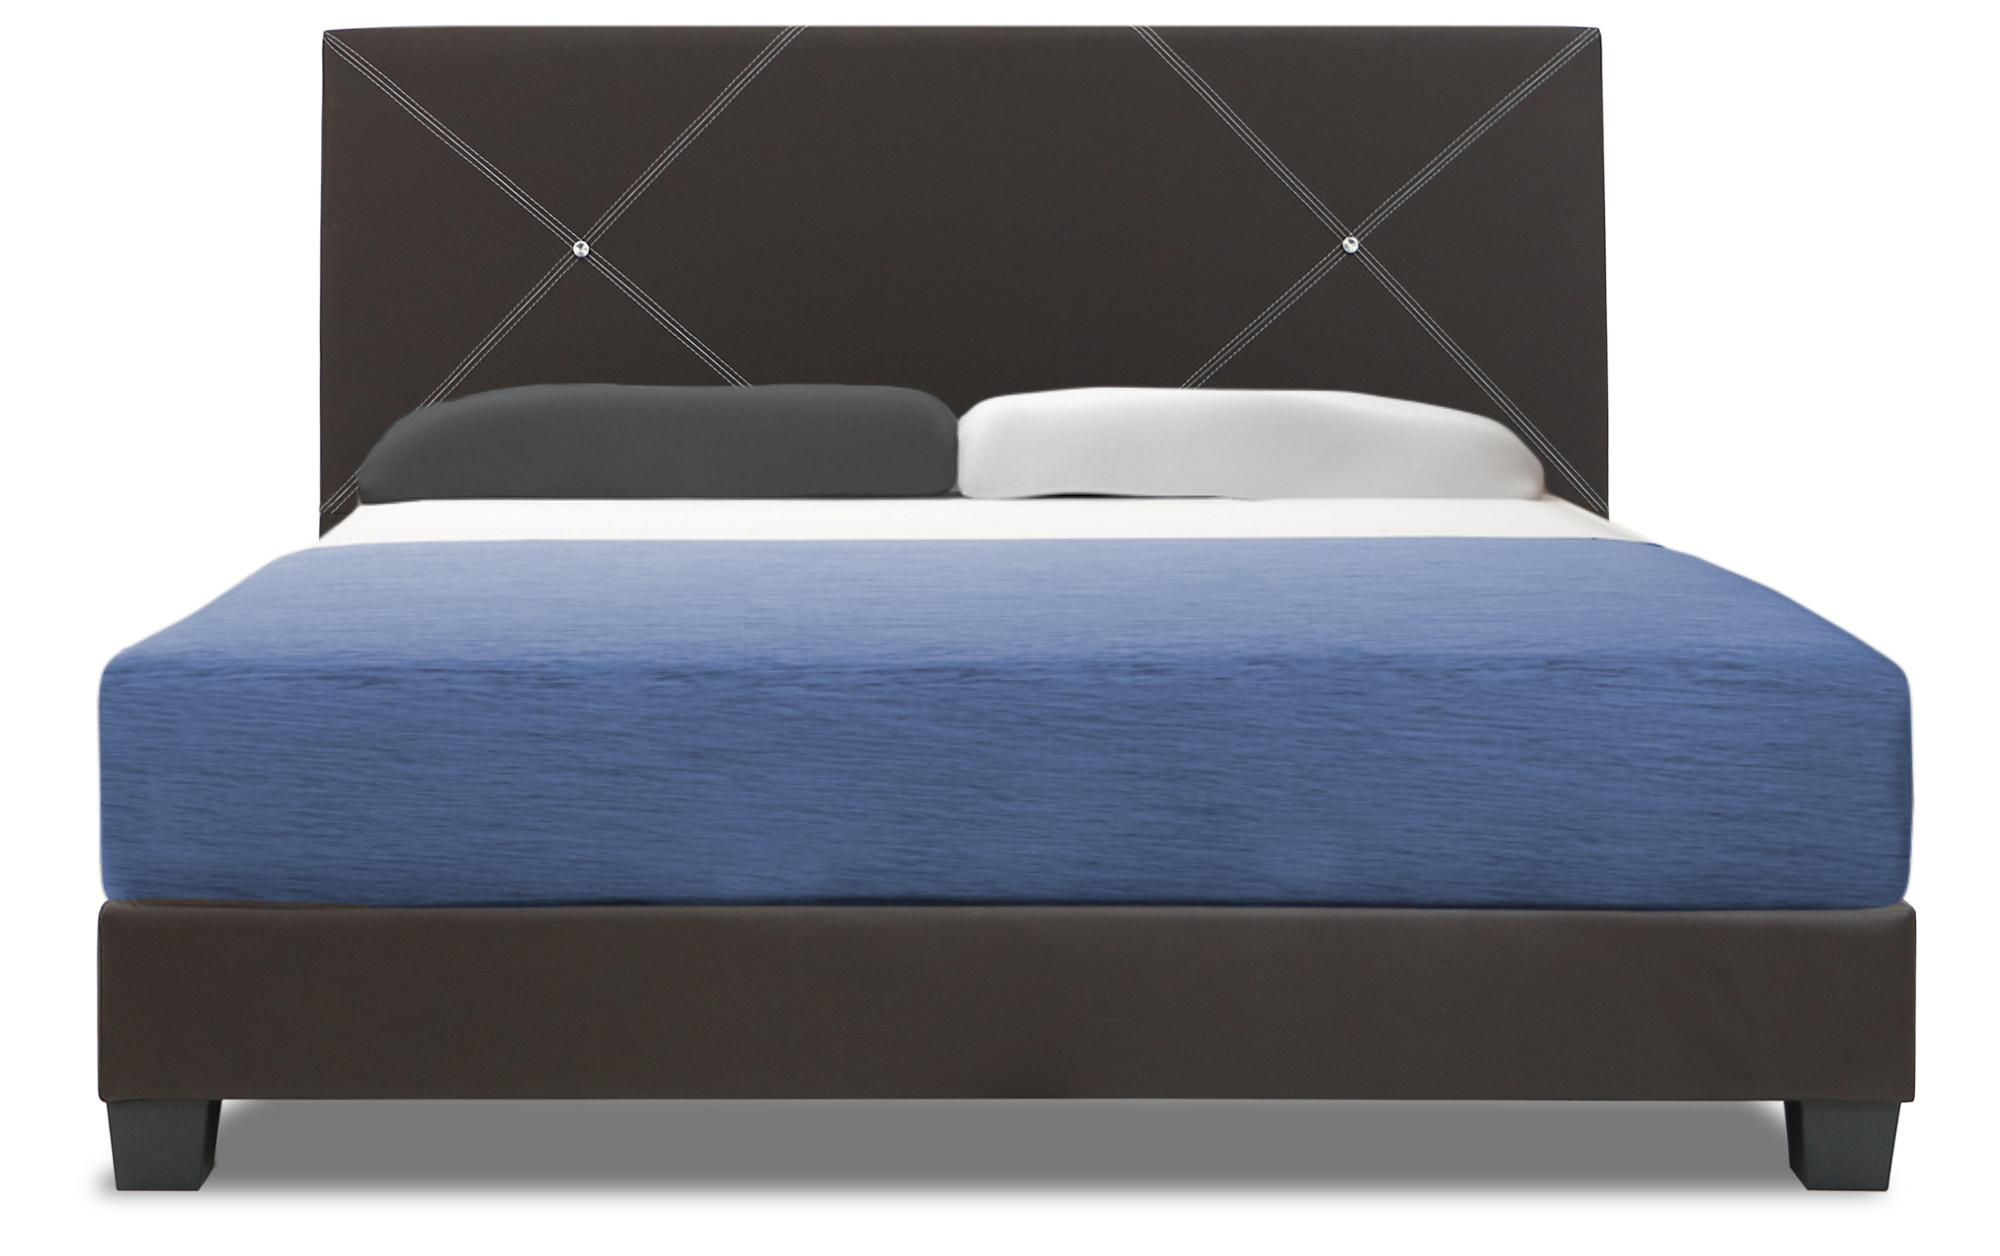 A-STAR Bejeweled Faux Leather Bed frame Set in Queen Size (mattress included)